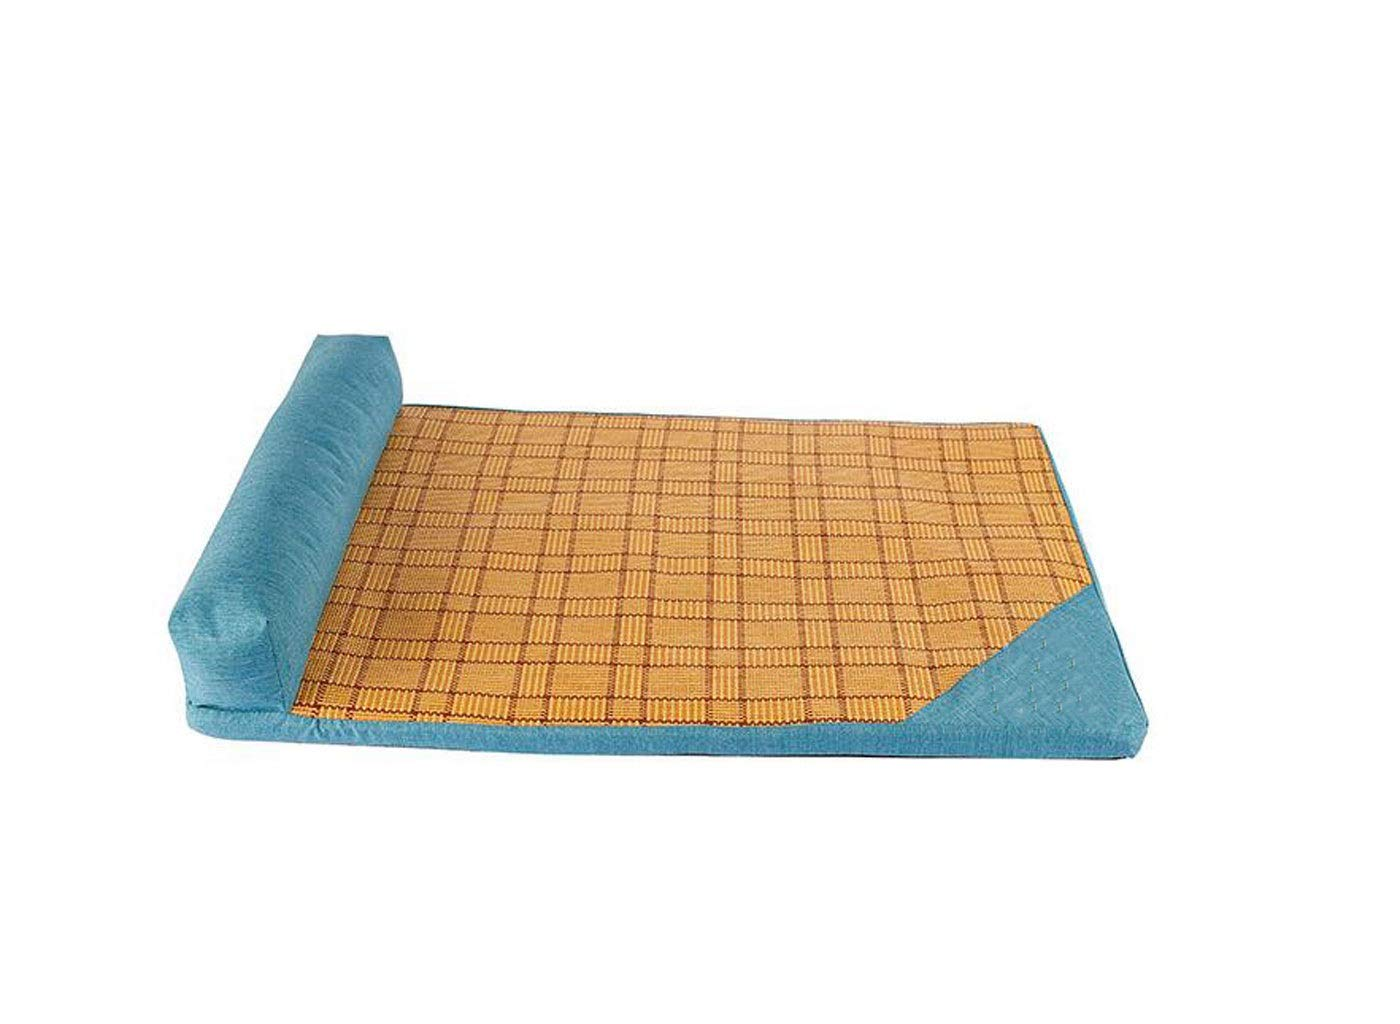 bluee Large bluee Large ZJEXJJ New straw mats summer cool kennel large medium and small dog mattress pet supplies pet summer cool pad (color   bluee, Size   L)